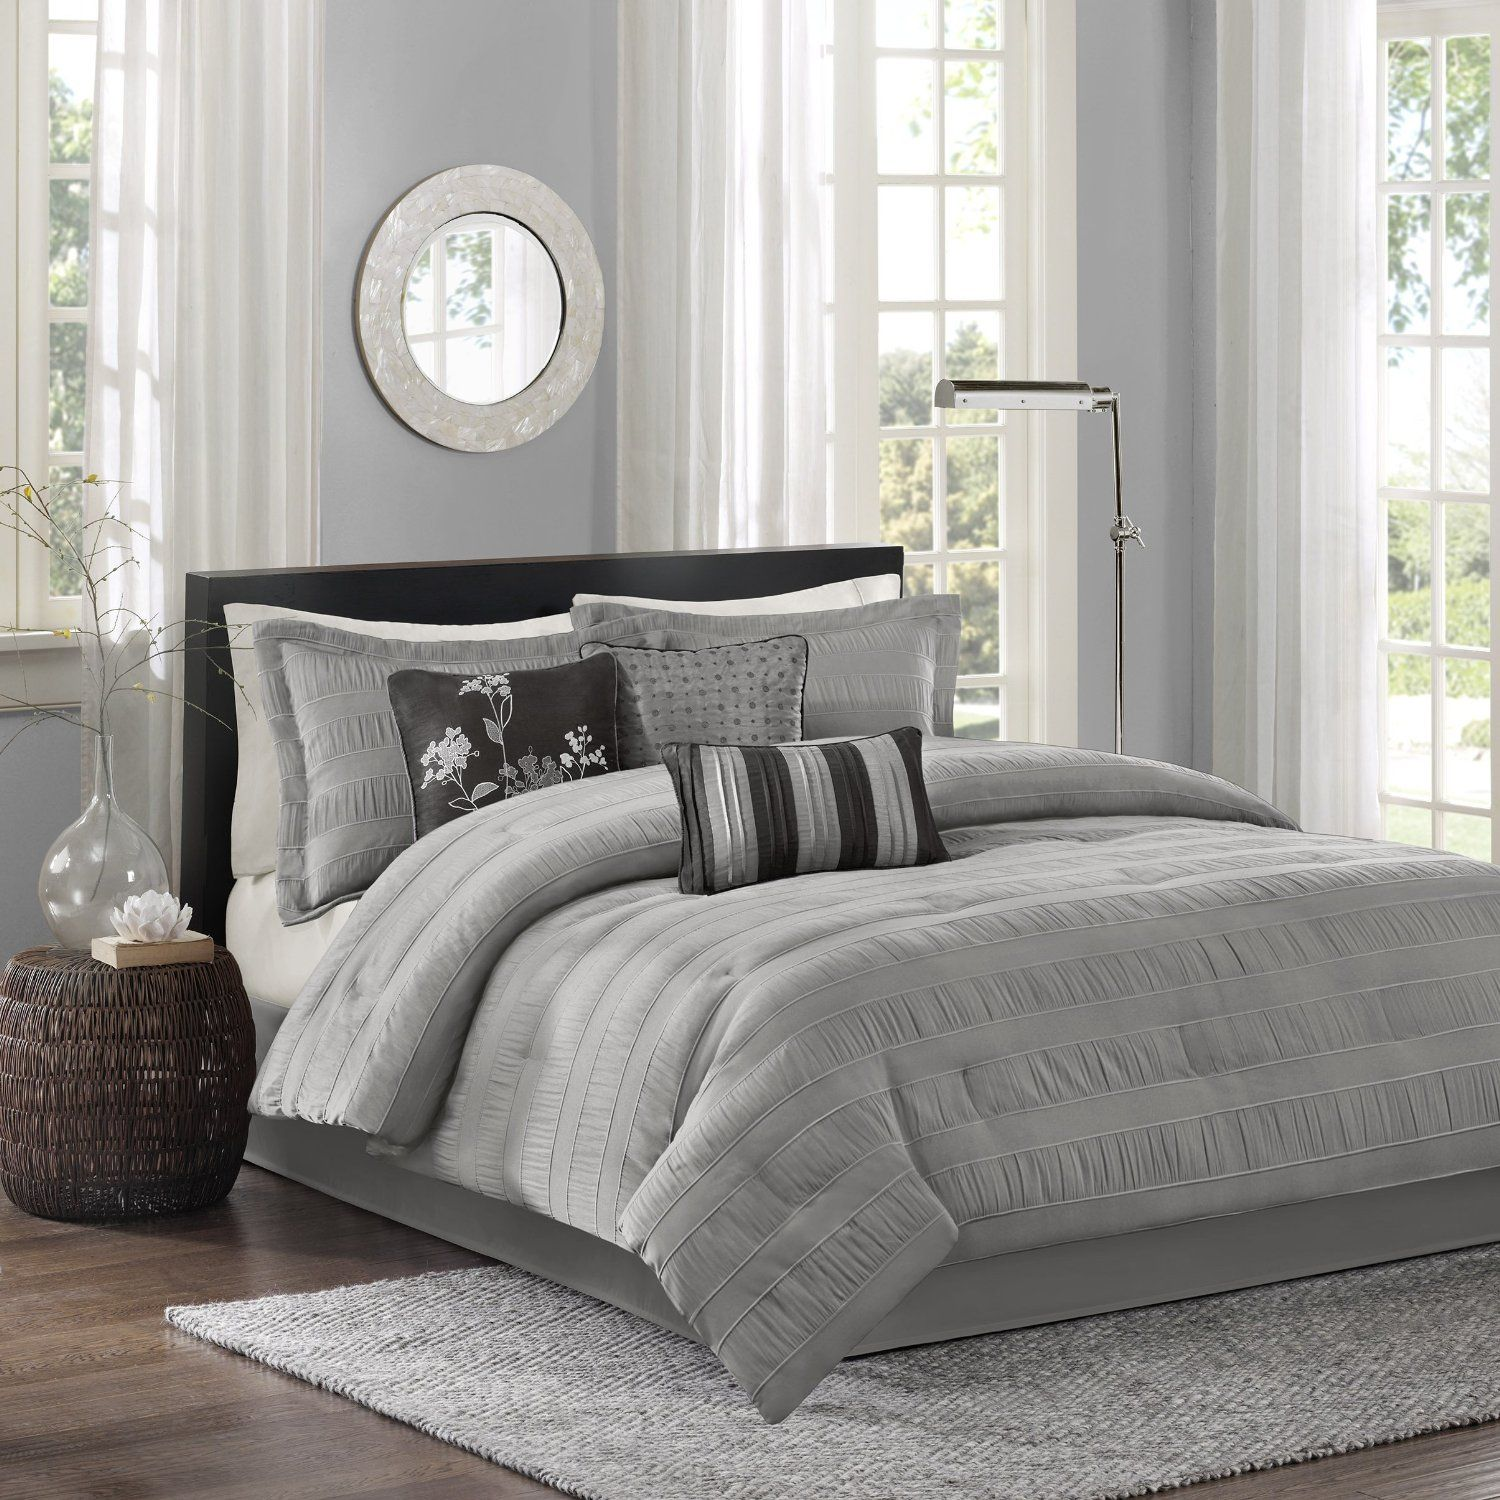 Cheap and Best Grey Comforters Comforter sets